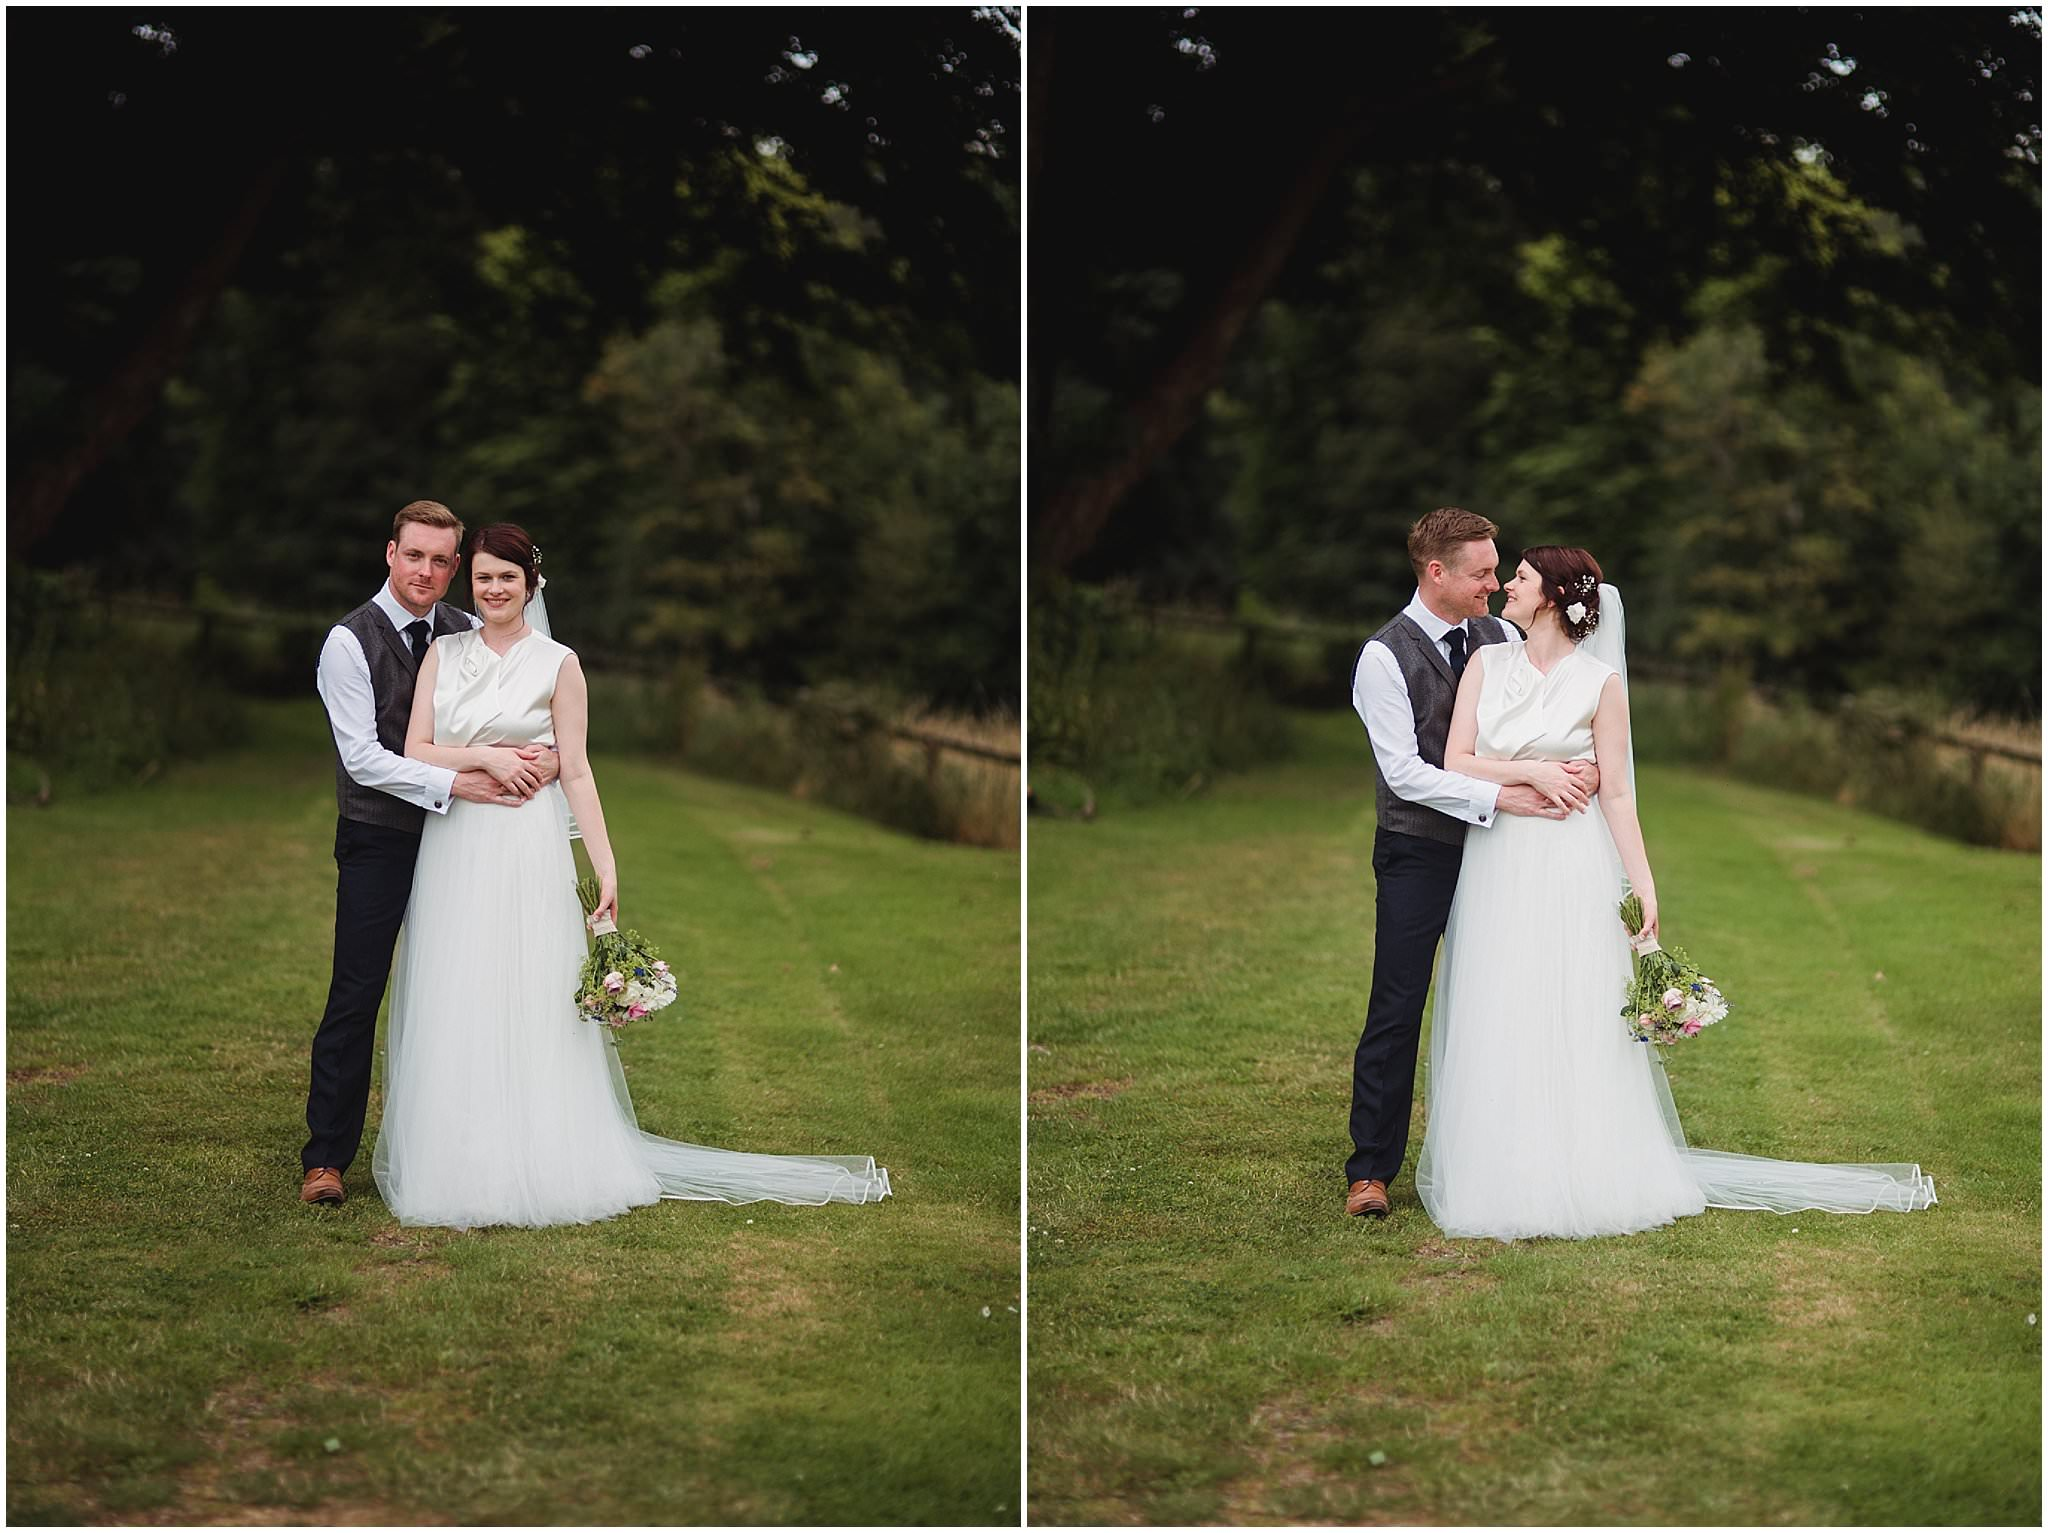 fay & tim wedding at ashley wood farm_0475